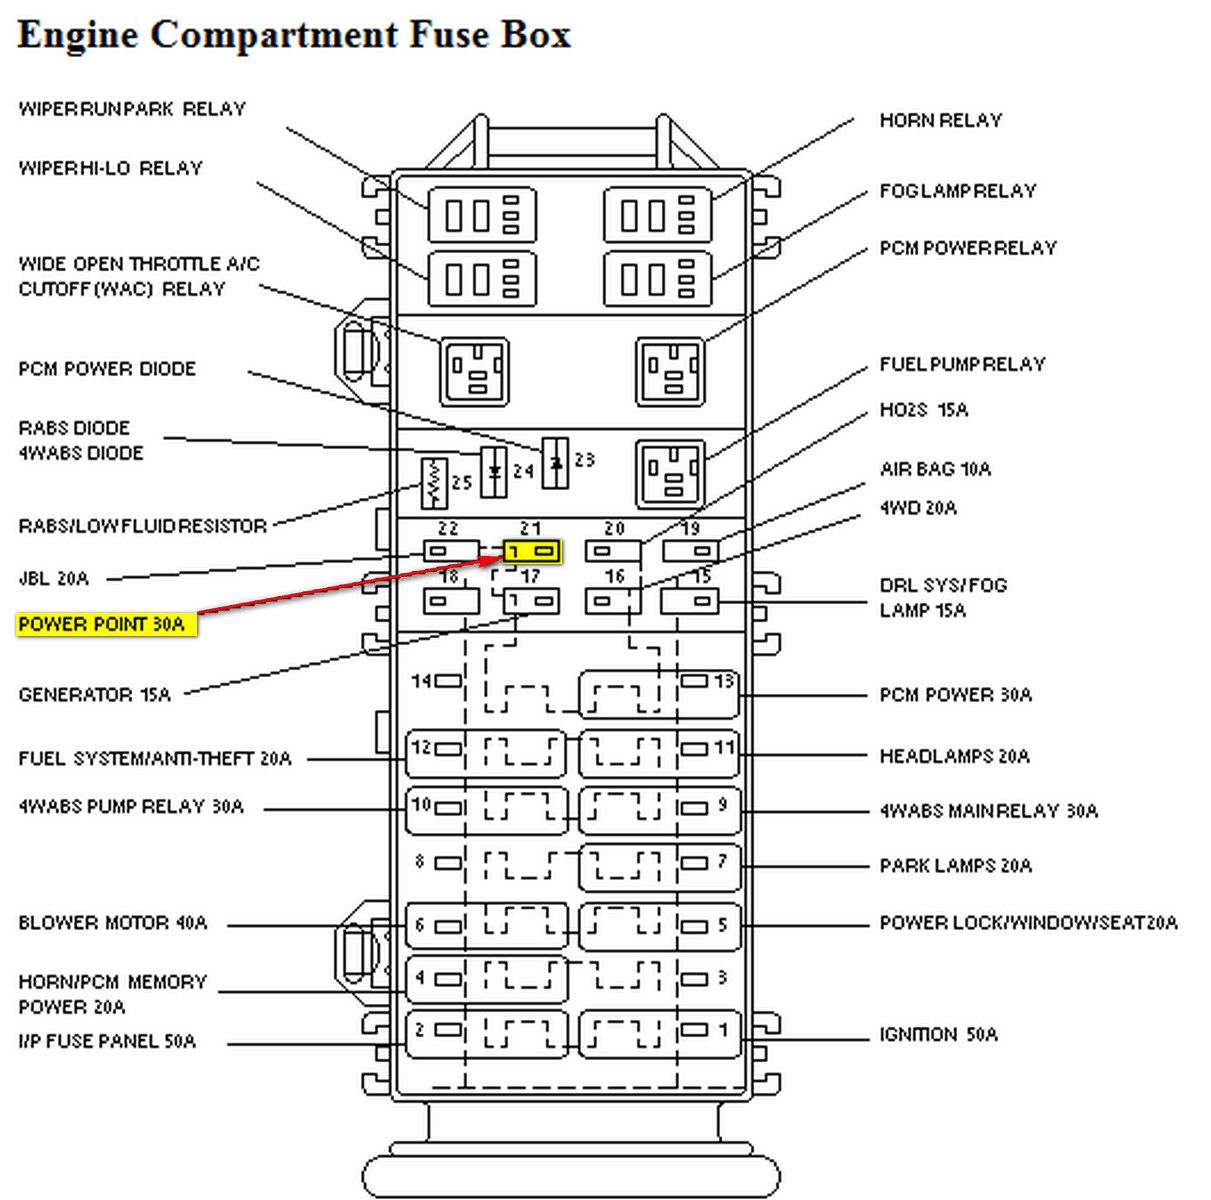 small resolution of 2002 ford ranger fuse diagram 1997 ford ranger fuse box diagram 2004 ford ranger fuse box diagram